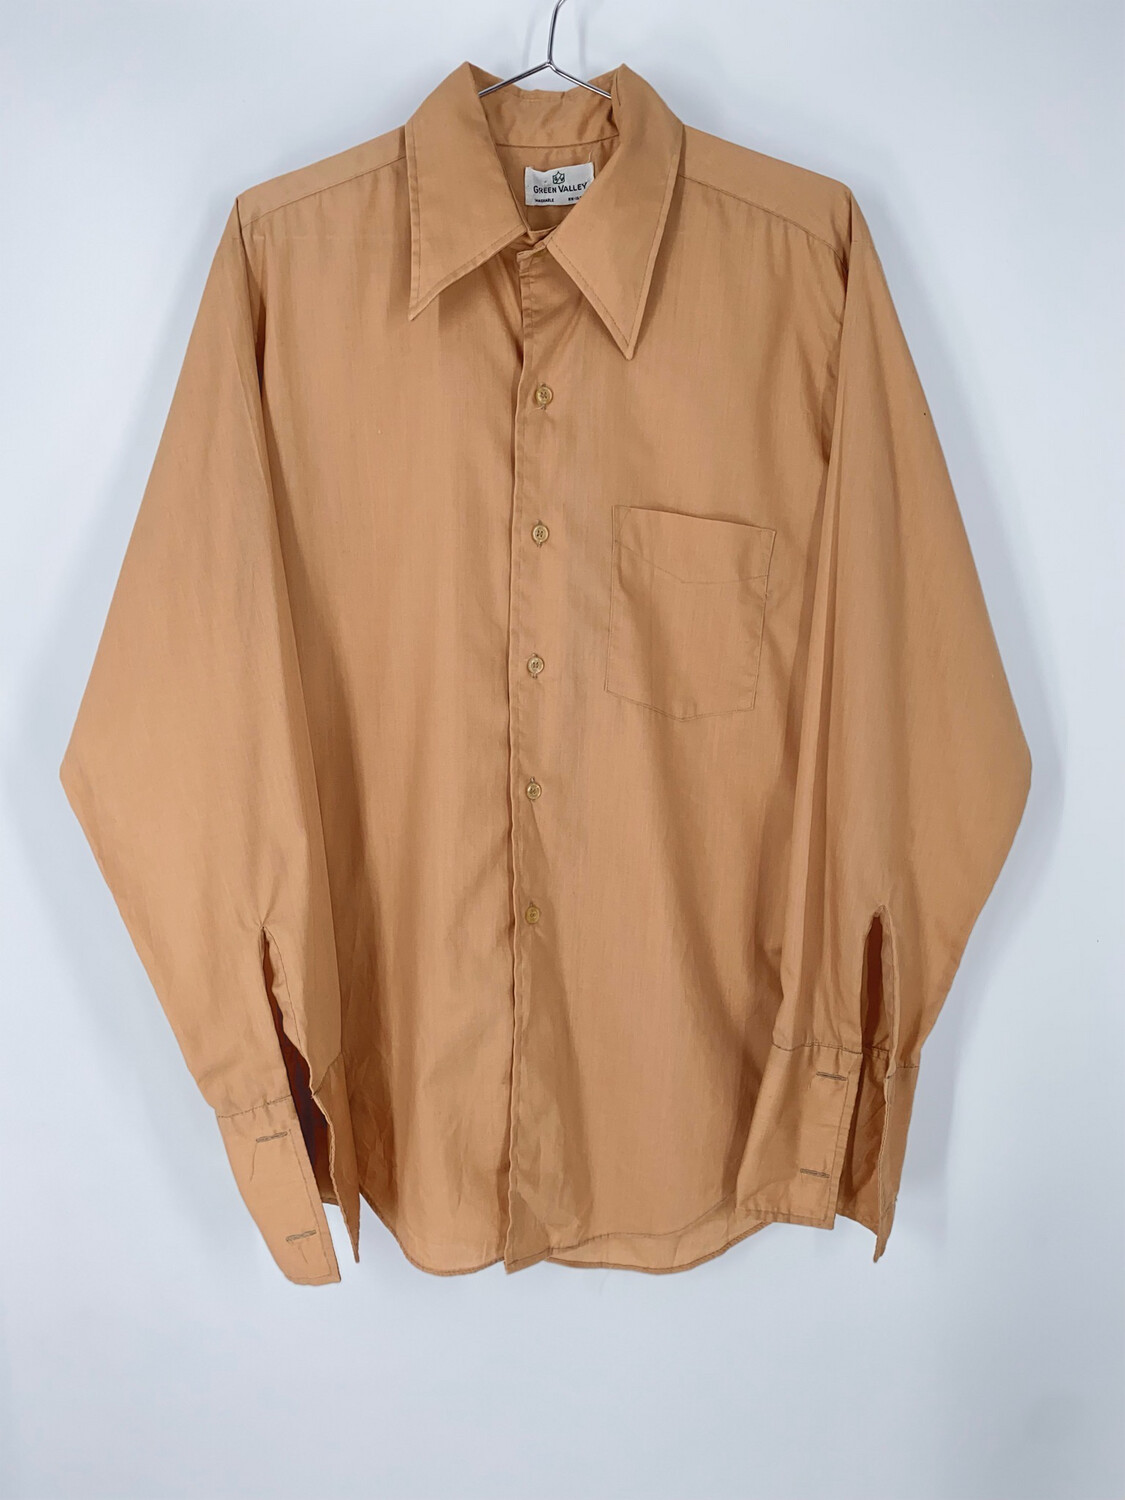 Green Valley Button Up Size M